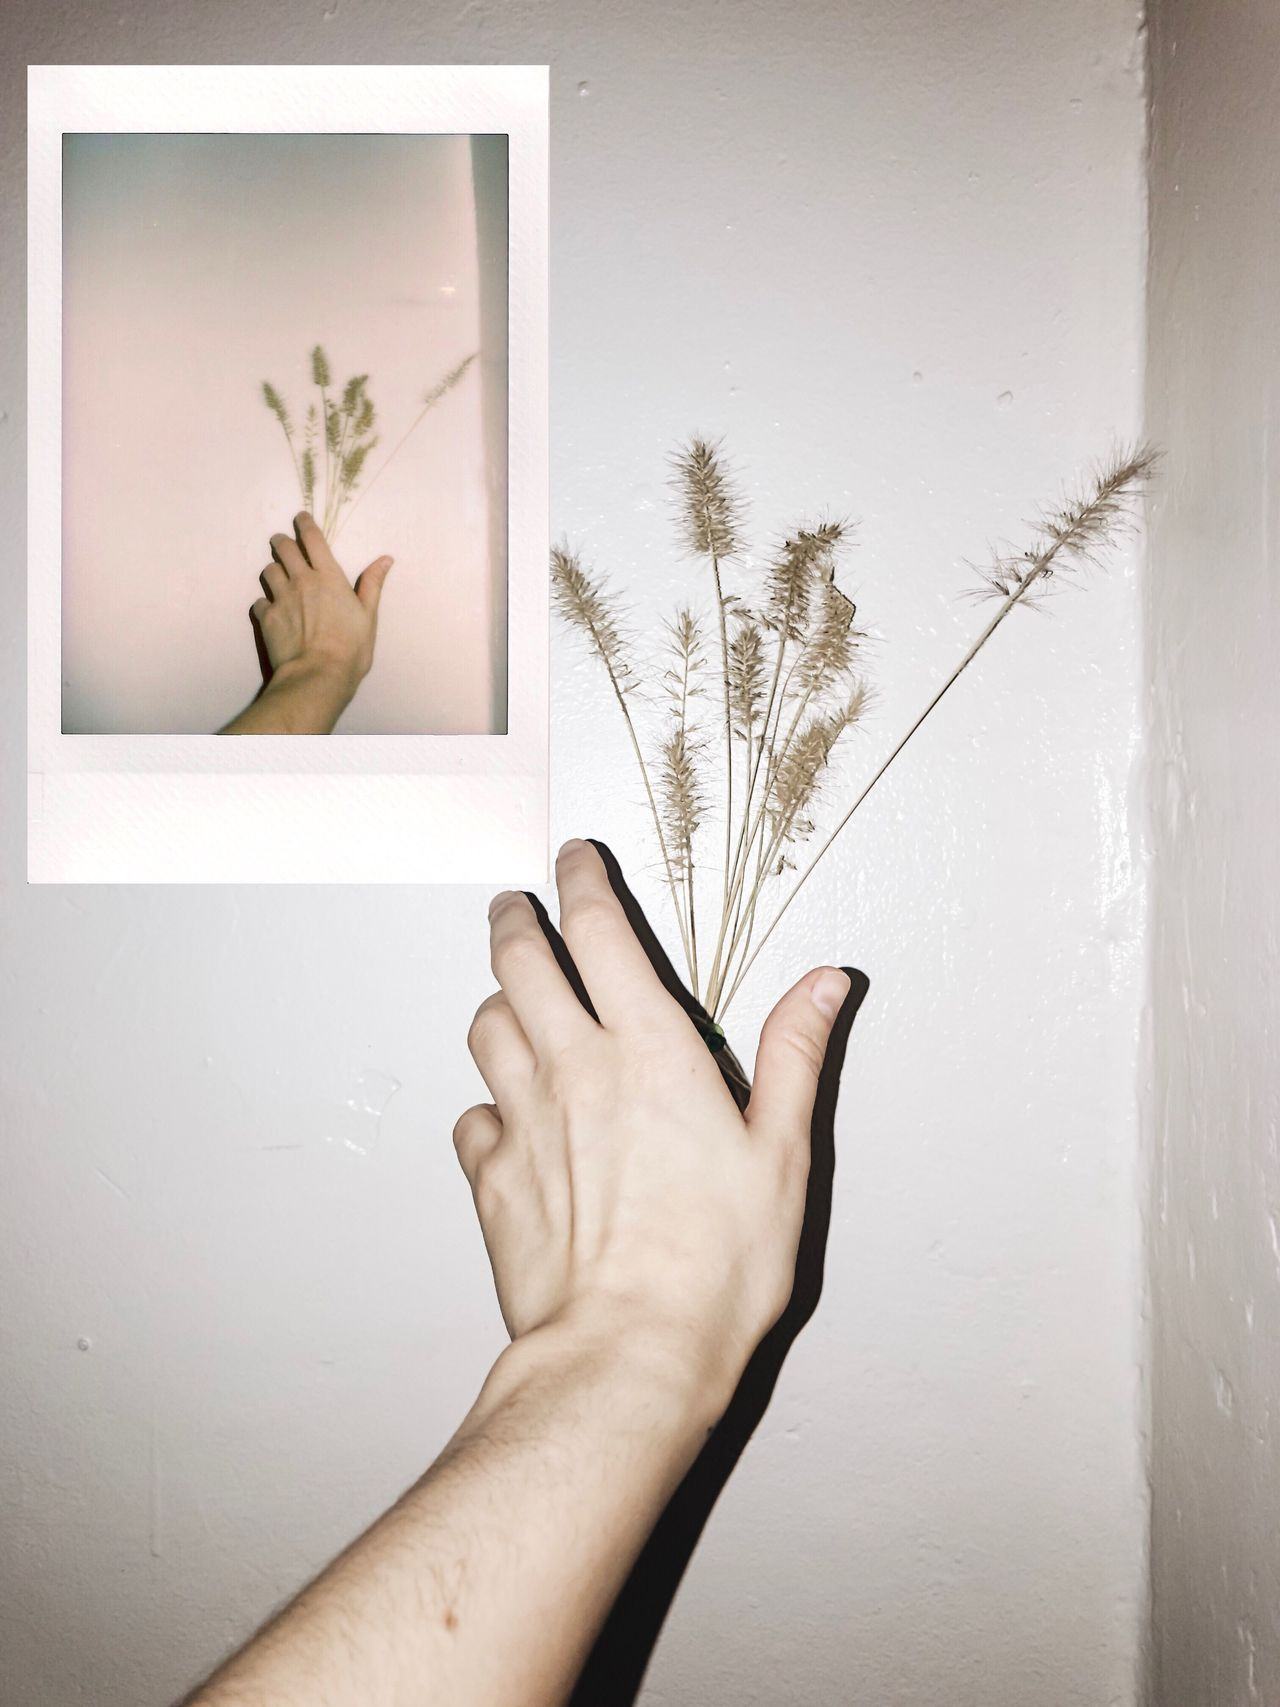 Instant Photo A Day Film Photography Film Film Is Not Dead Human Hand Human Body Part One Person Real People Indoors  Day